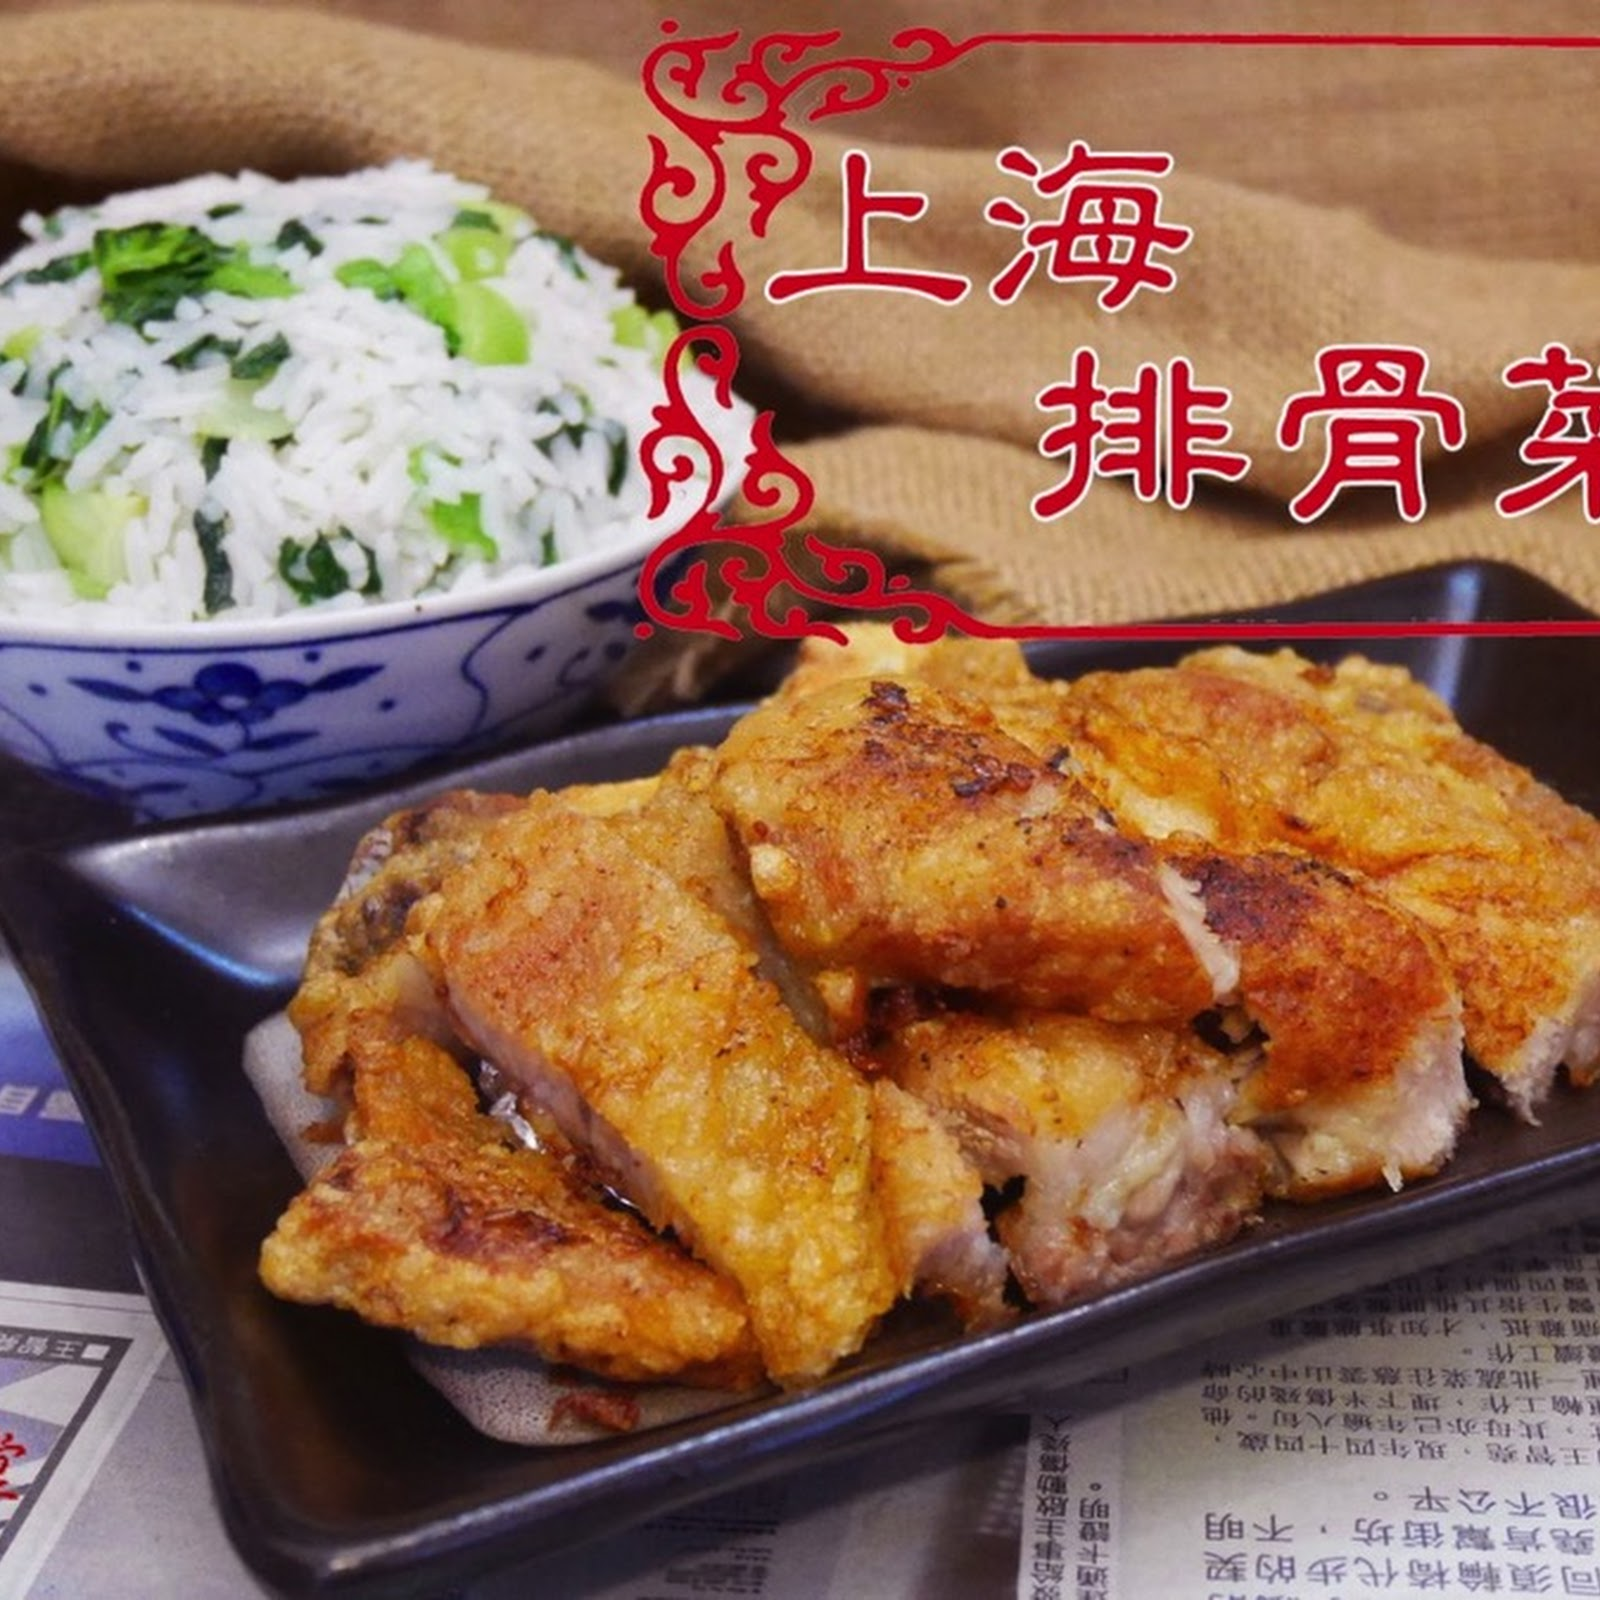 上海排骨菜飯 Fried Pork Chops with Vegetable Rice【老娘的草根飯堂】